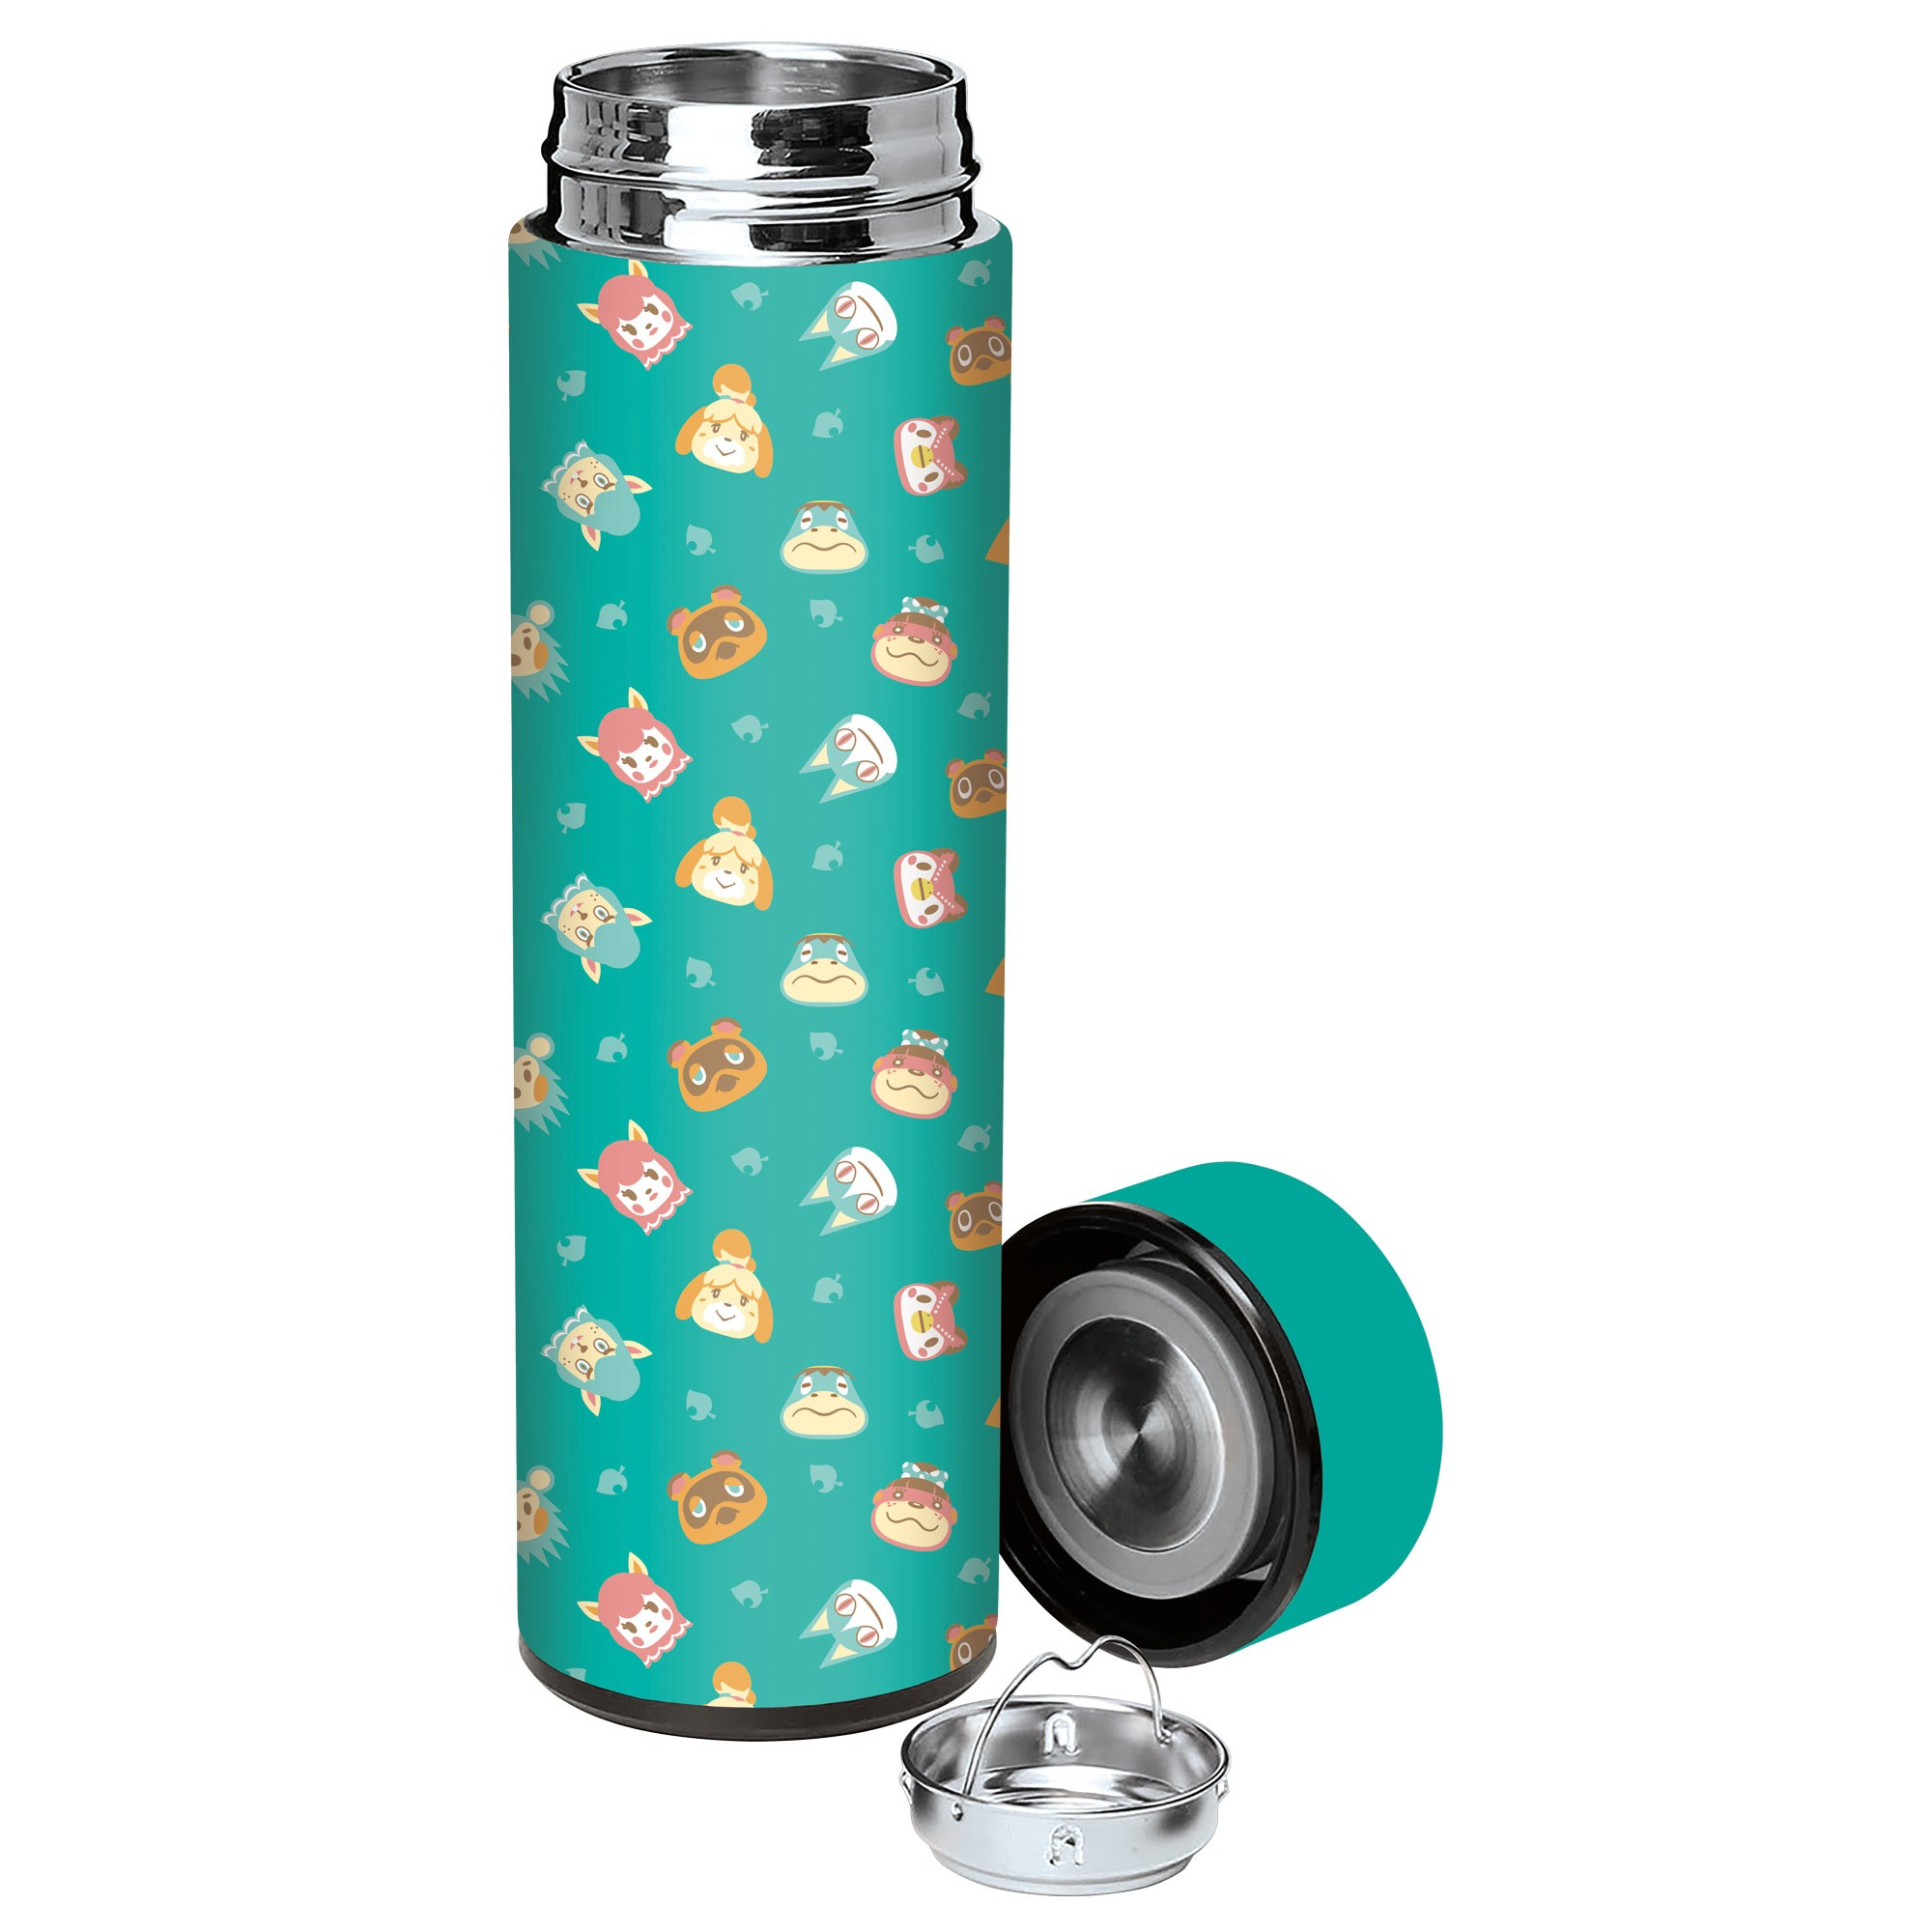 Animal Crossing Stainless Steel Water Bottle, Image 1